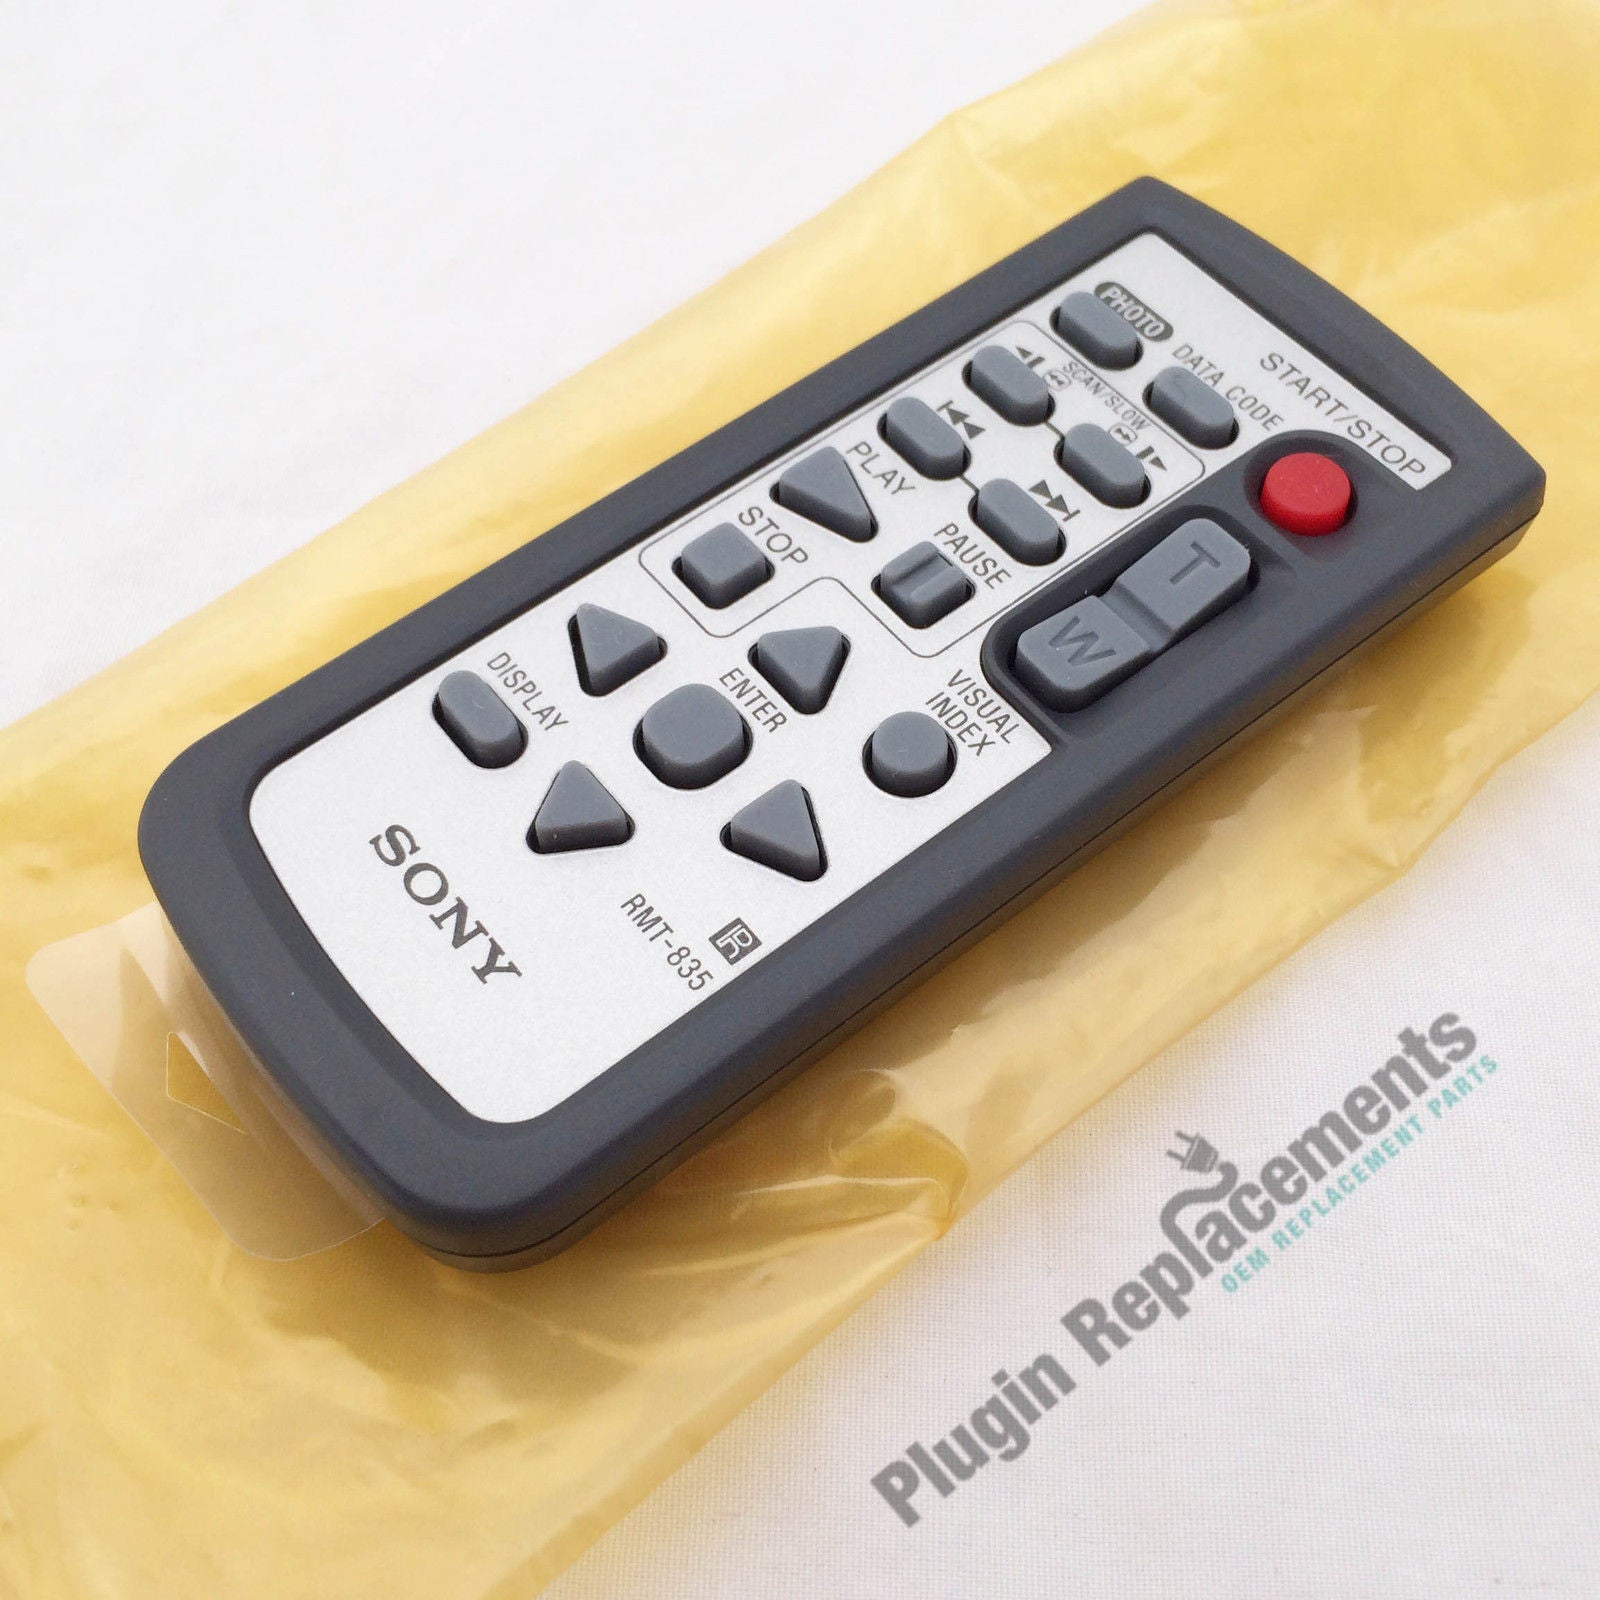 Sony Rmt 835 Remote Control For Sony Handycam Hdr Sr1